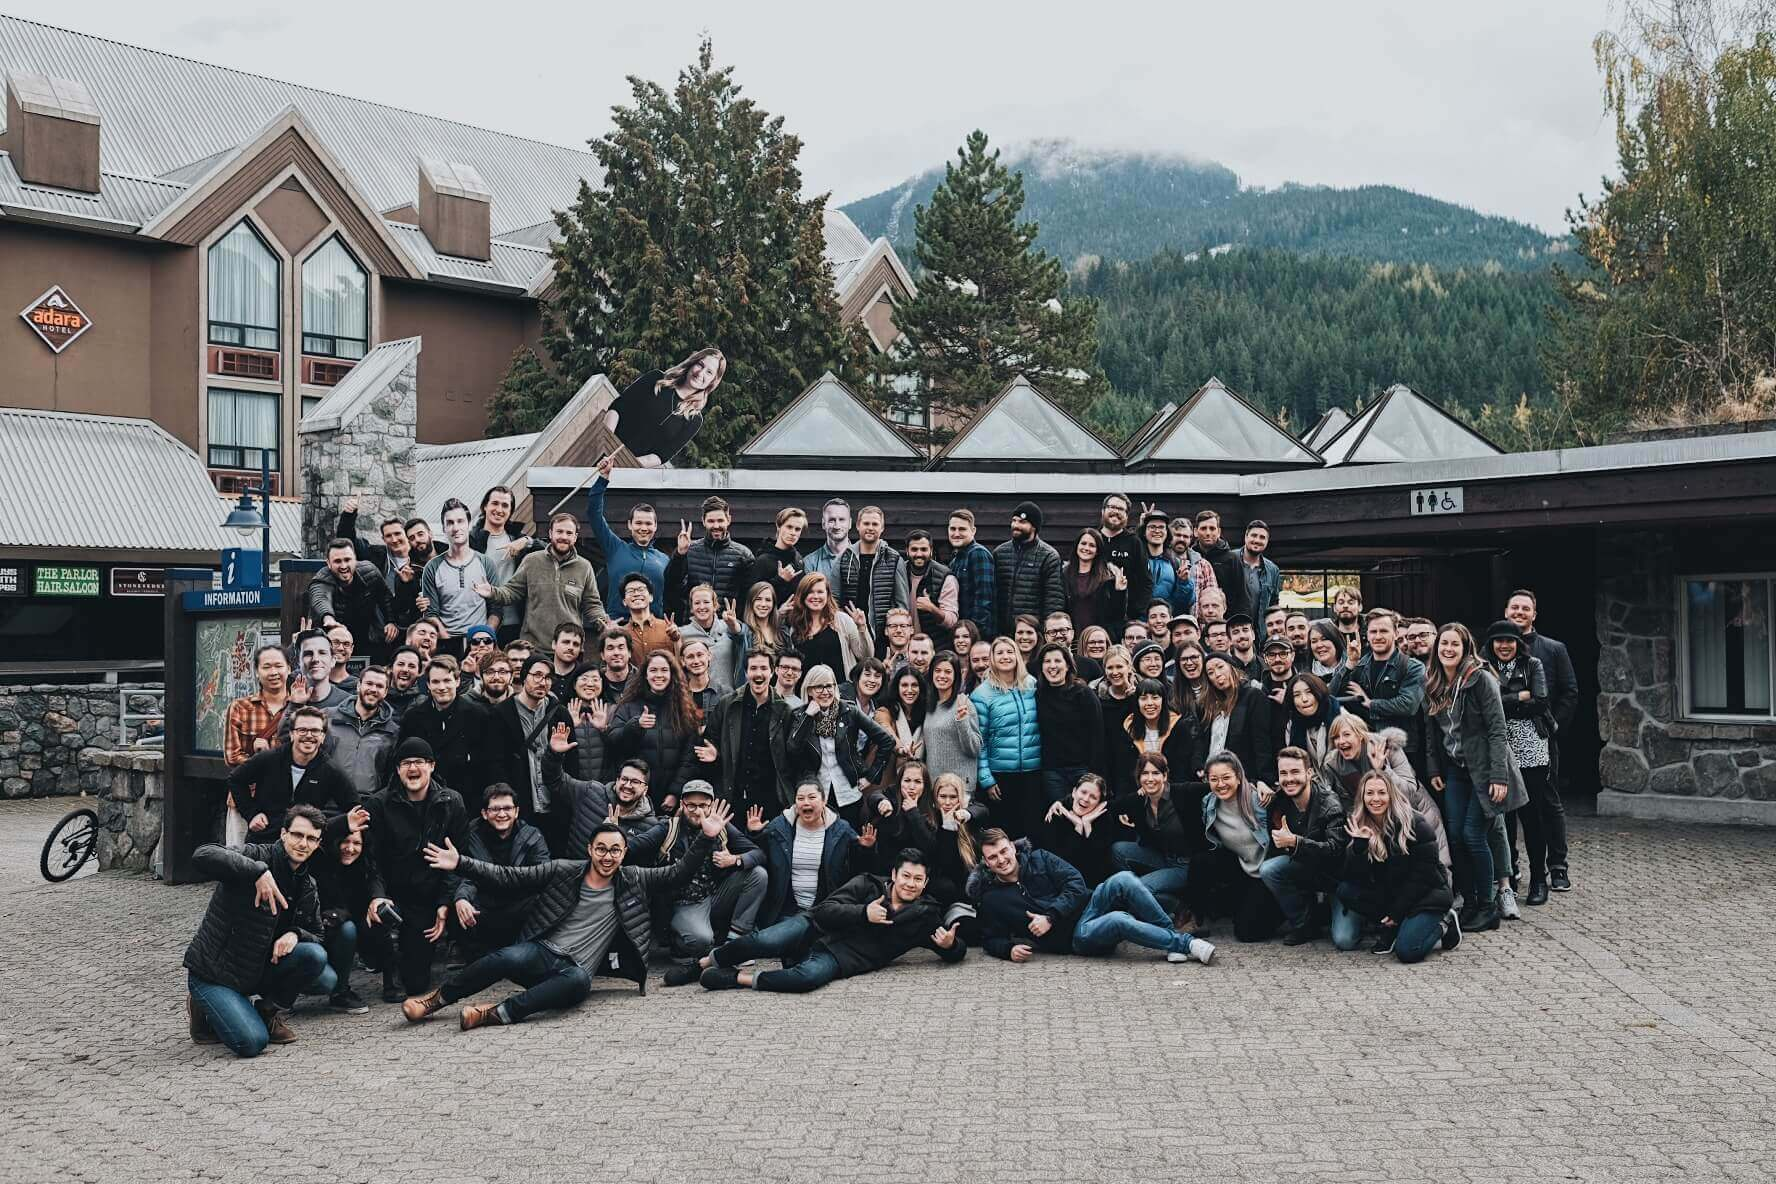 The MetaLab team at Remote Summit 2018